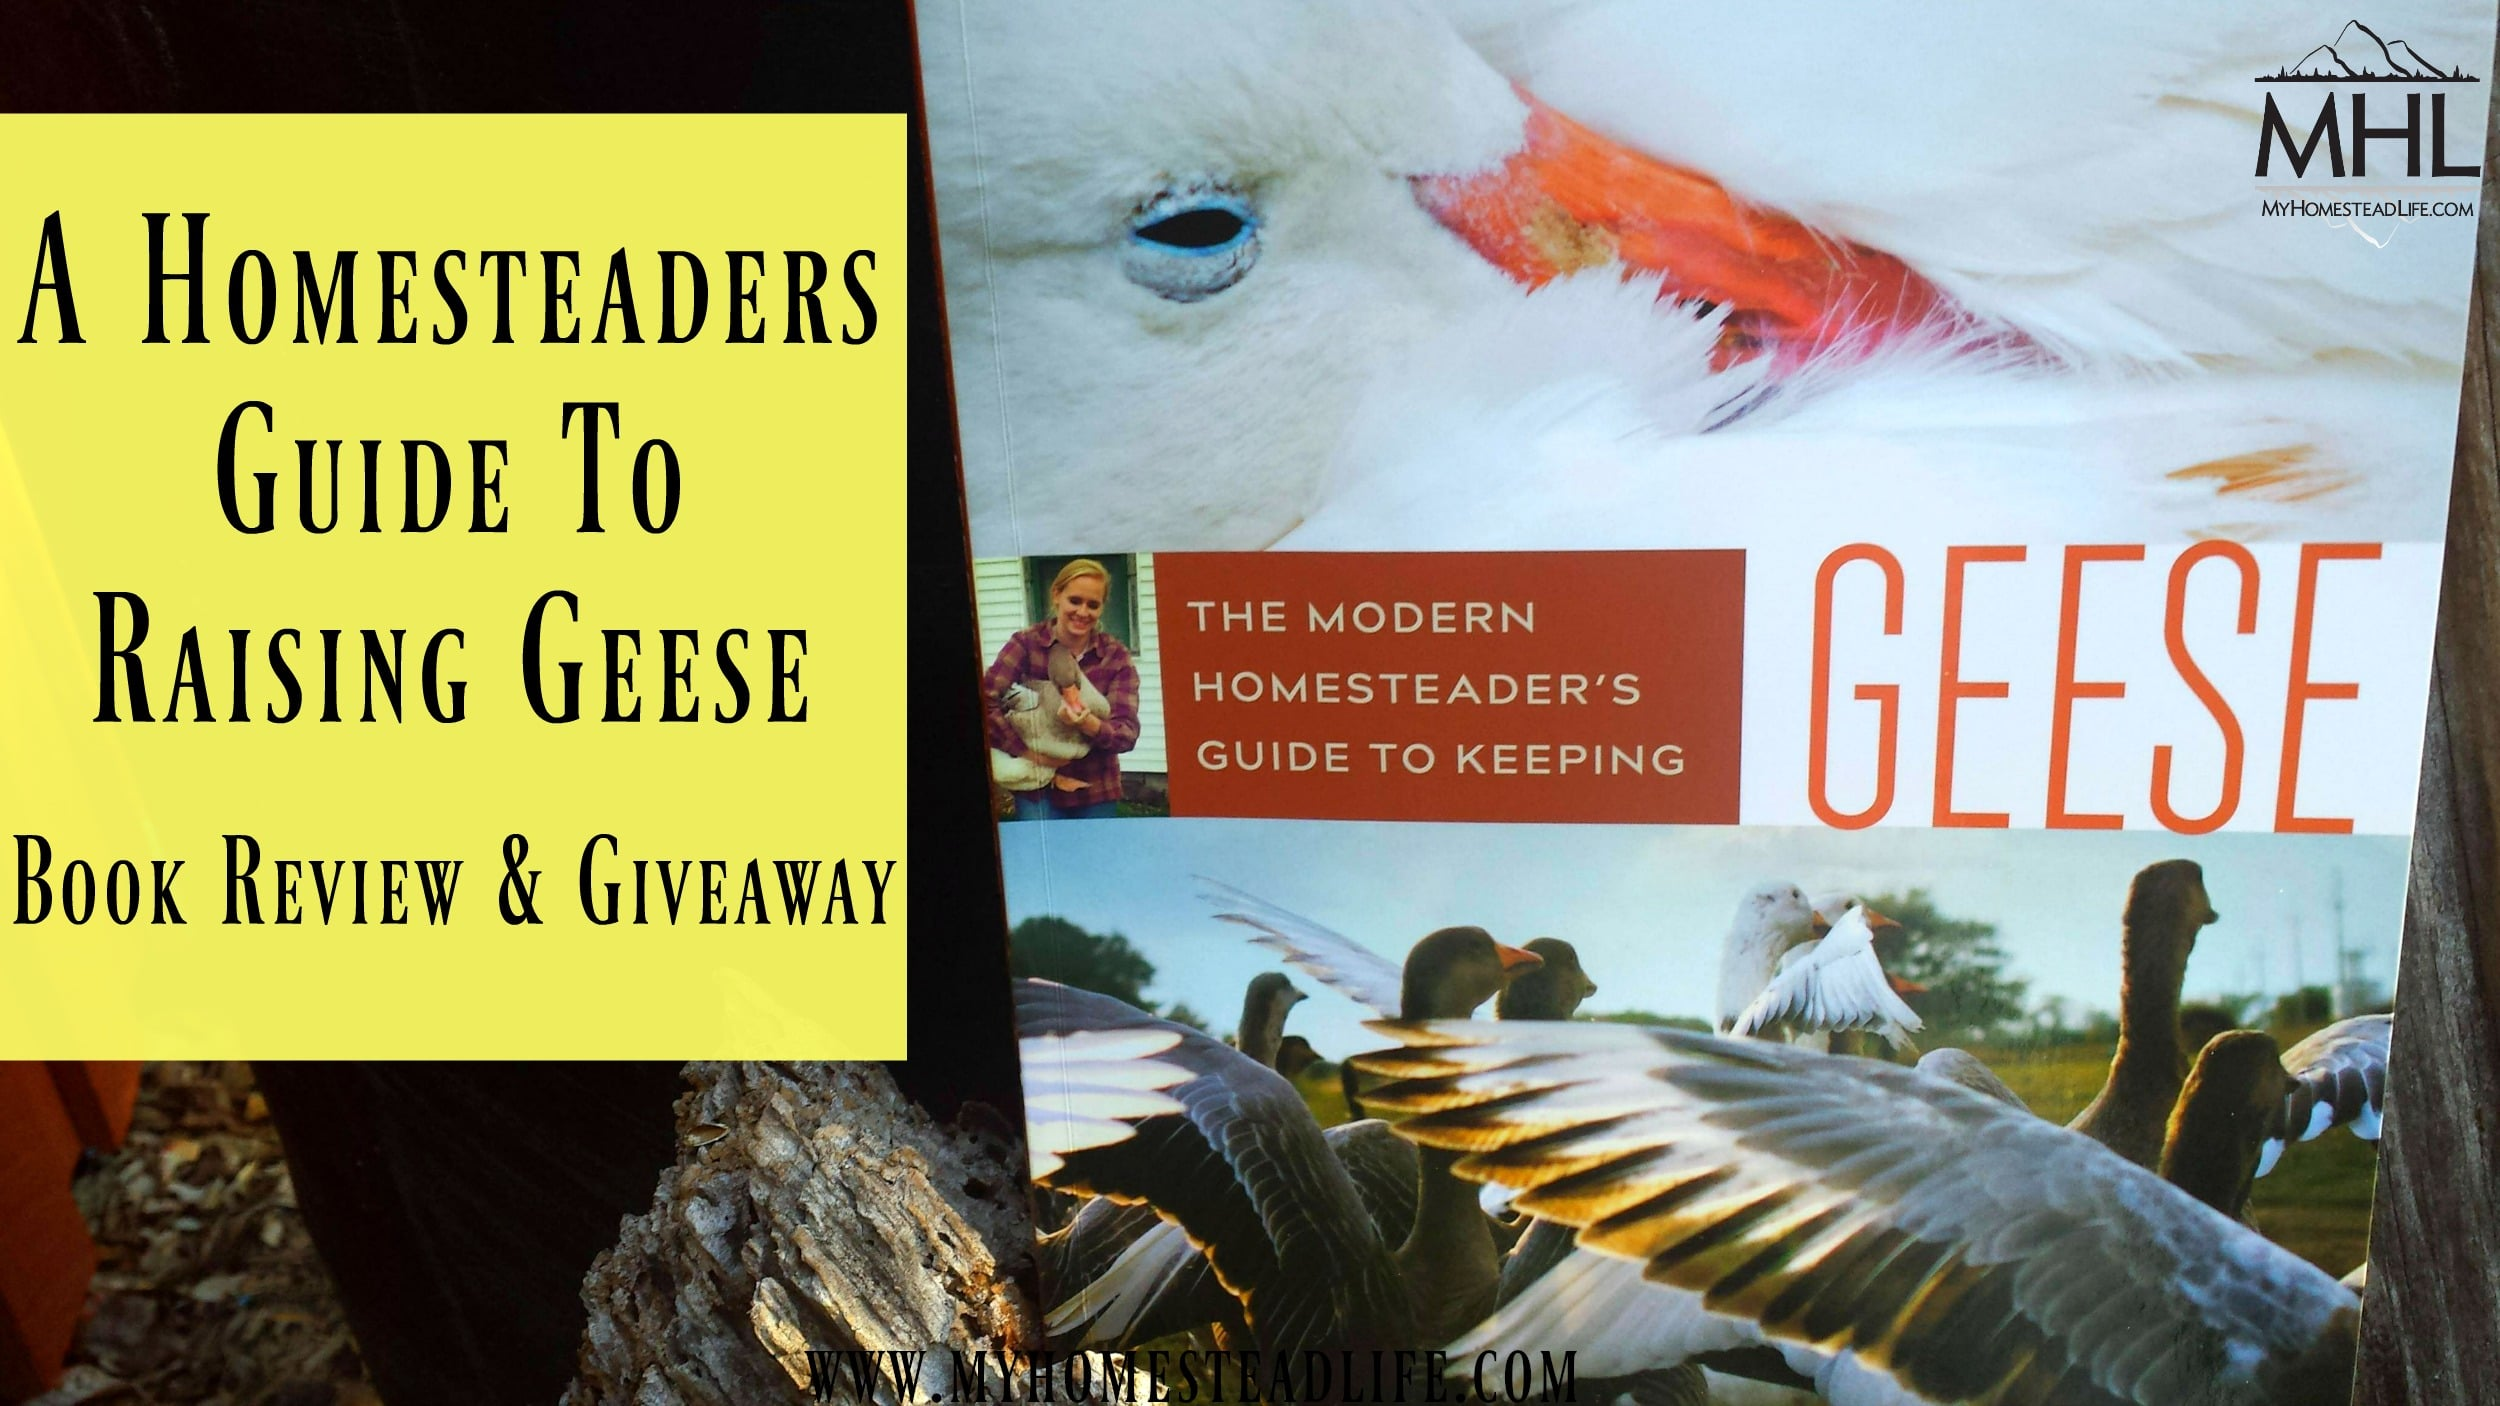 A Homesteaders Guide To Raising Geese- Book Review & Giveaway